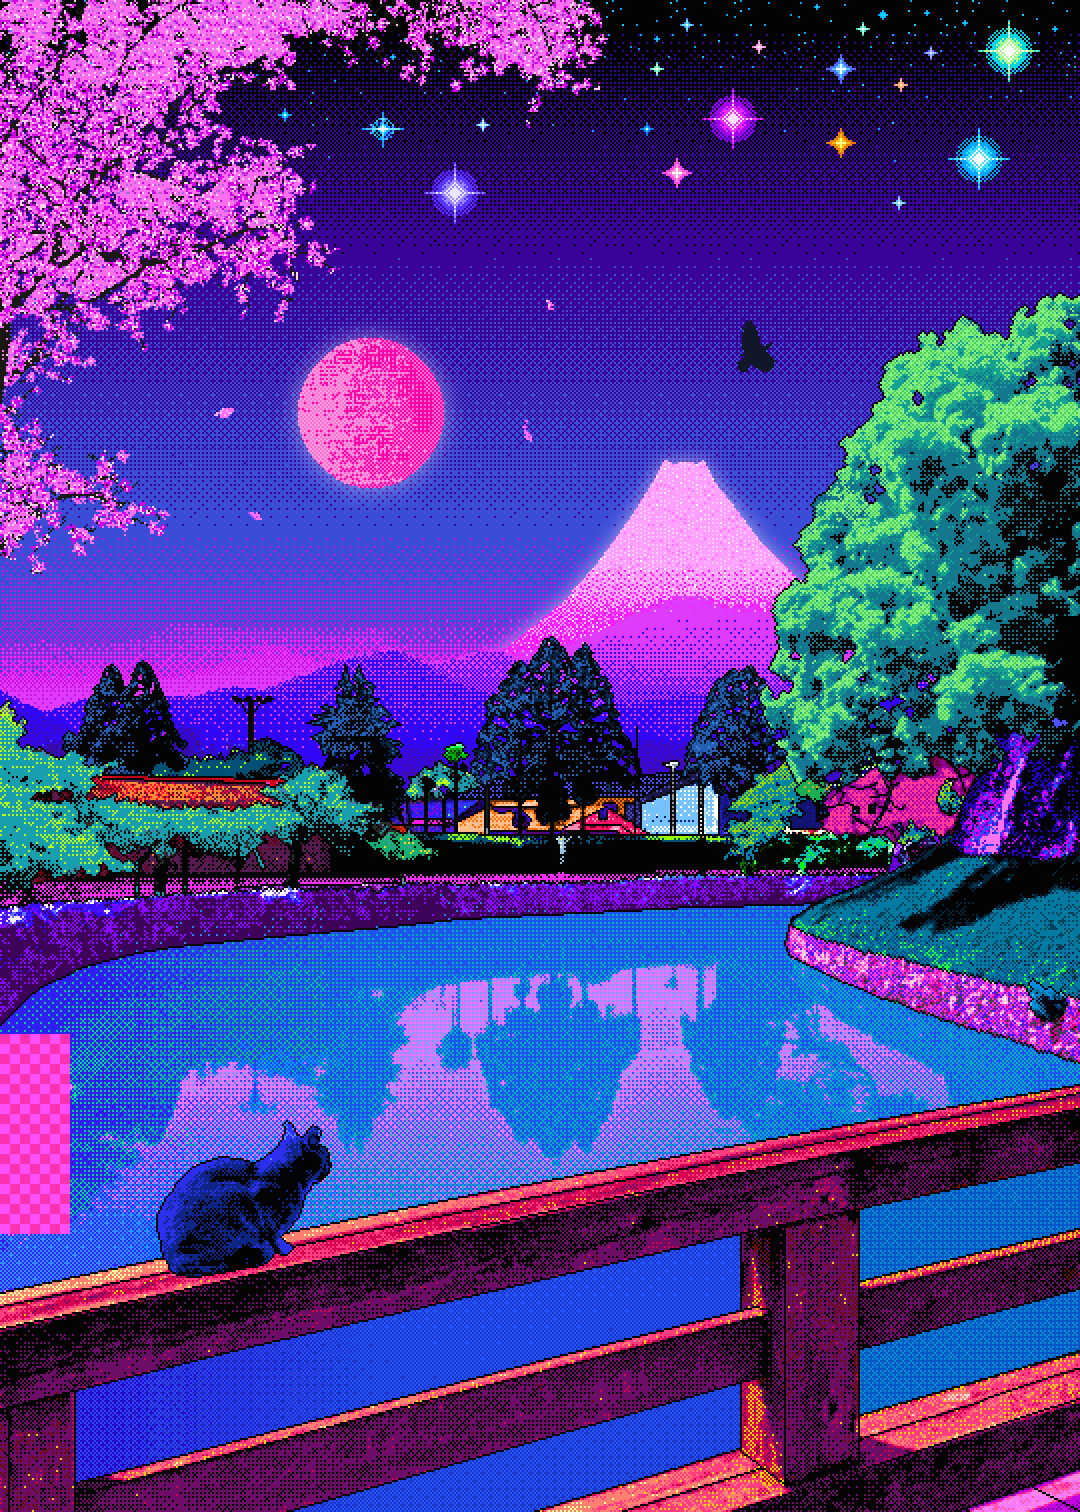 video garden Aesthetic wallpapers, Vaporwave art